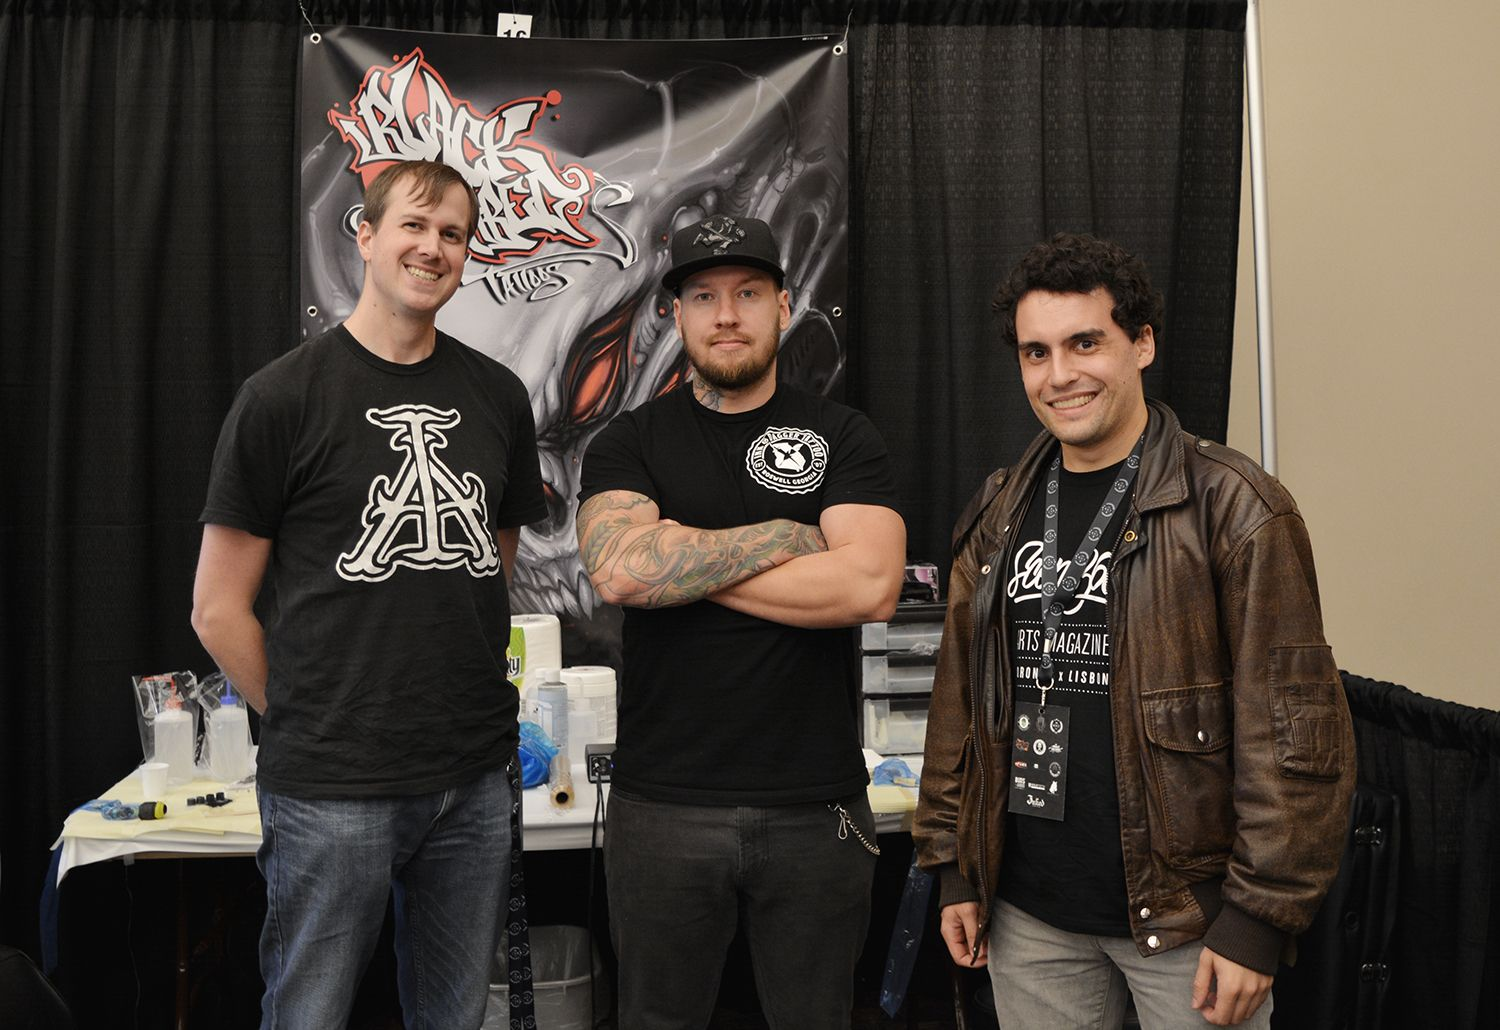 David Gluck (artist) and Tony Carter (Scene360), tattoo convention, van isle expo